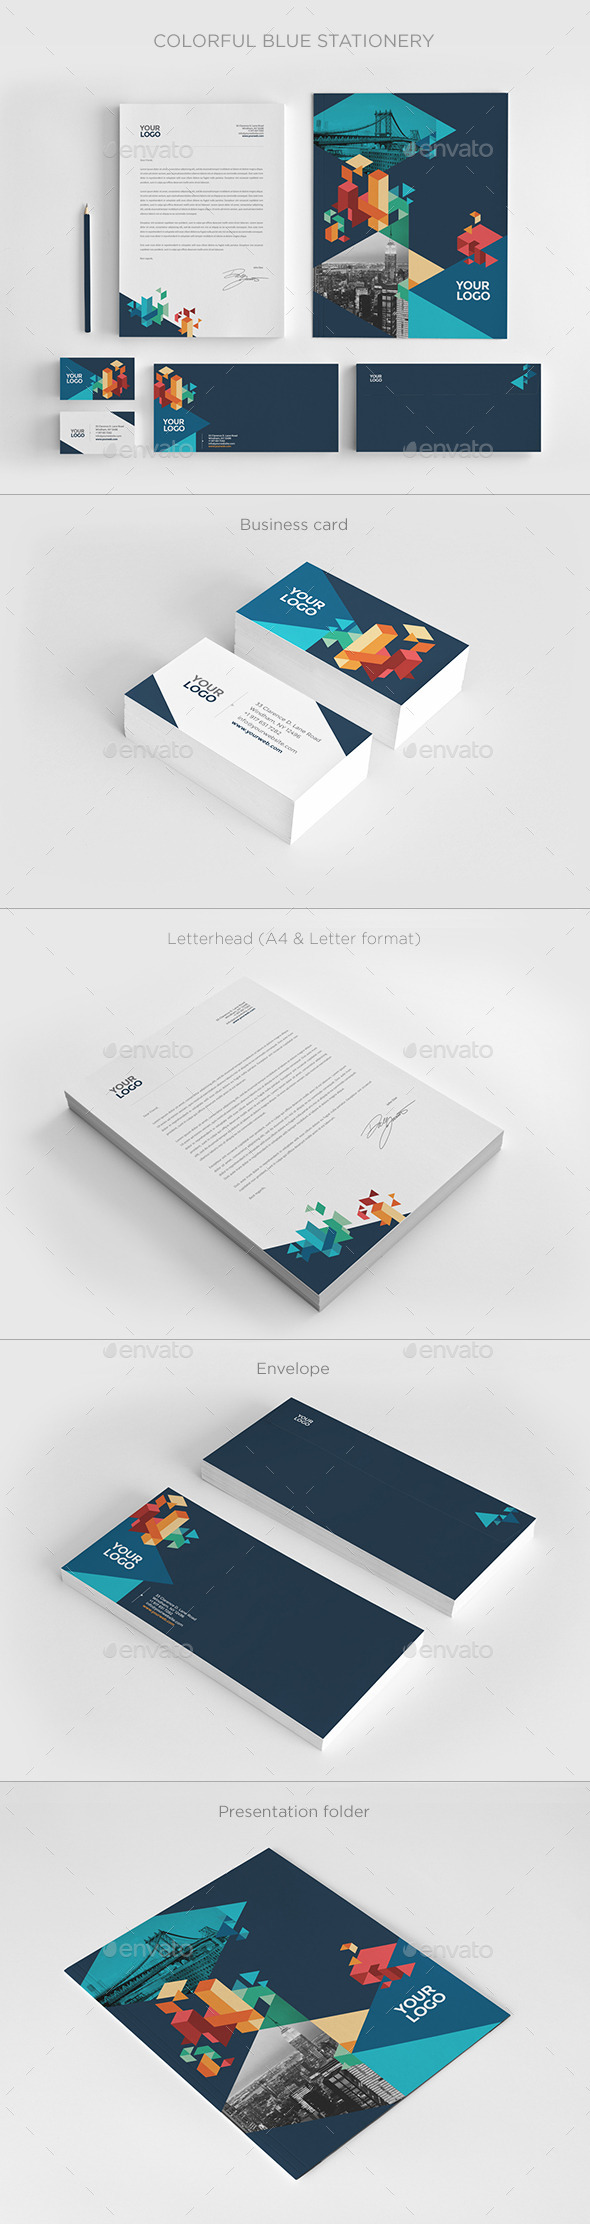 GraphicRiver Colorful Blue Stationery 11404263